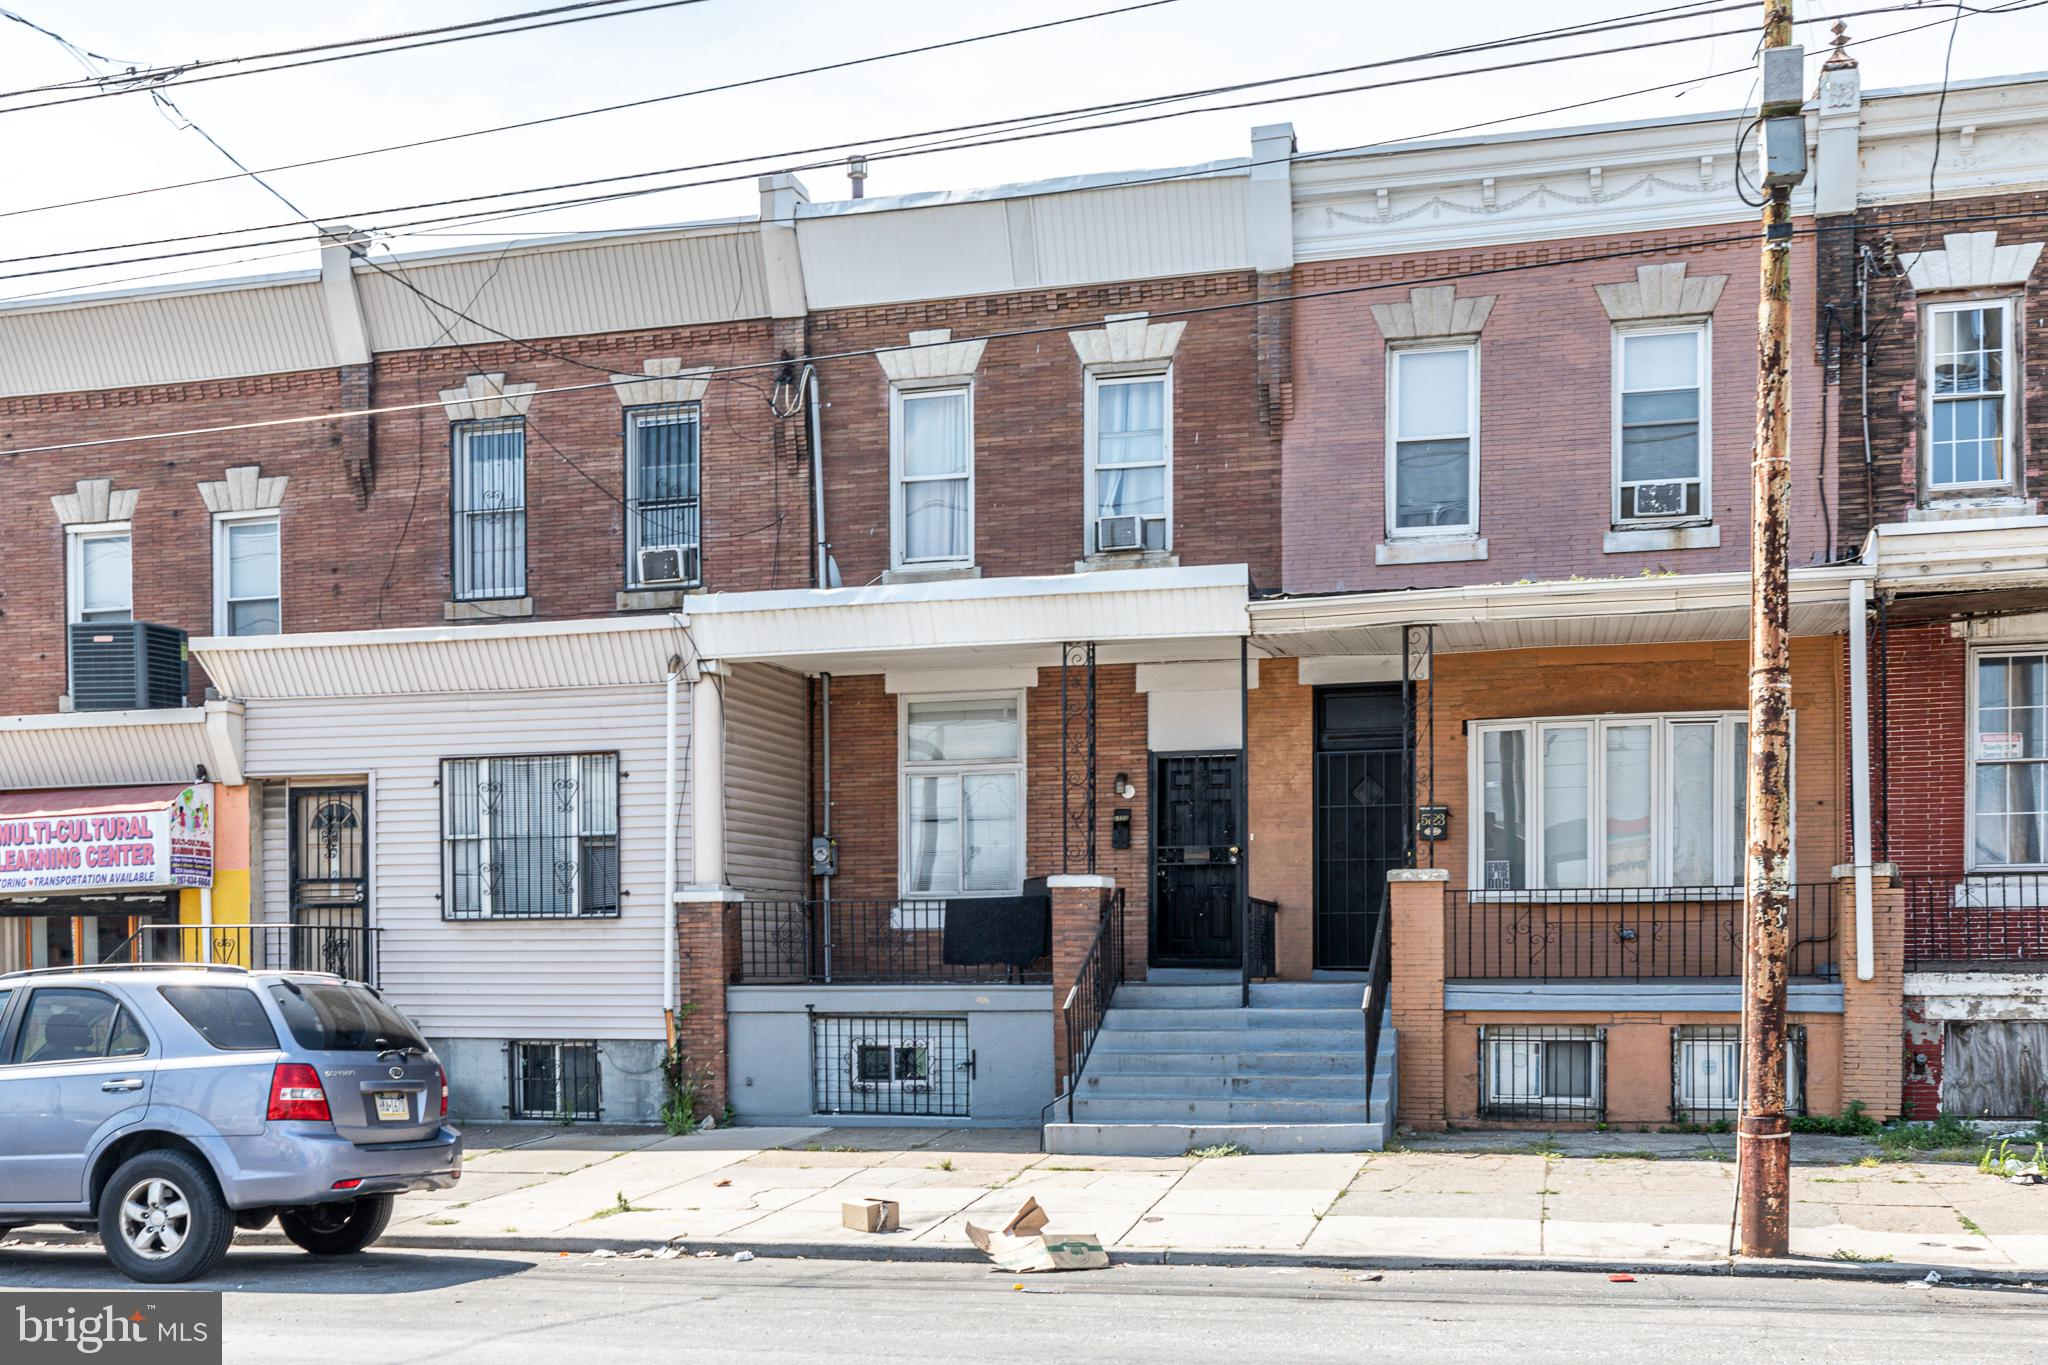 5725 WOODLAND AVENUE, PHILADELPHIA, Pennsylvania 19143, 4 Bedrooms Bedrooms, ,1 BathroomBathrooms,Townhouse,For Sale,5725 WOODLAND AVENUE,PAPH917380